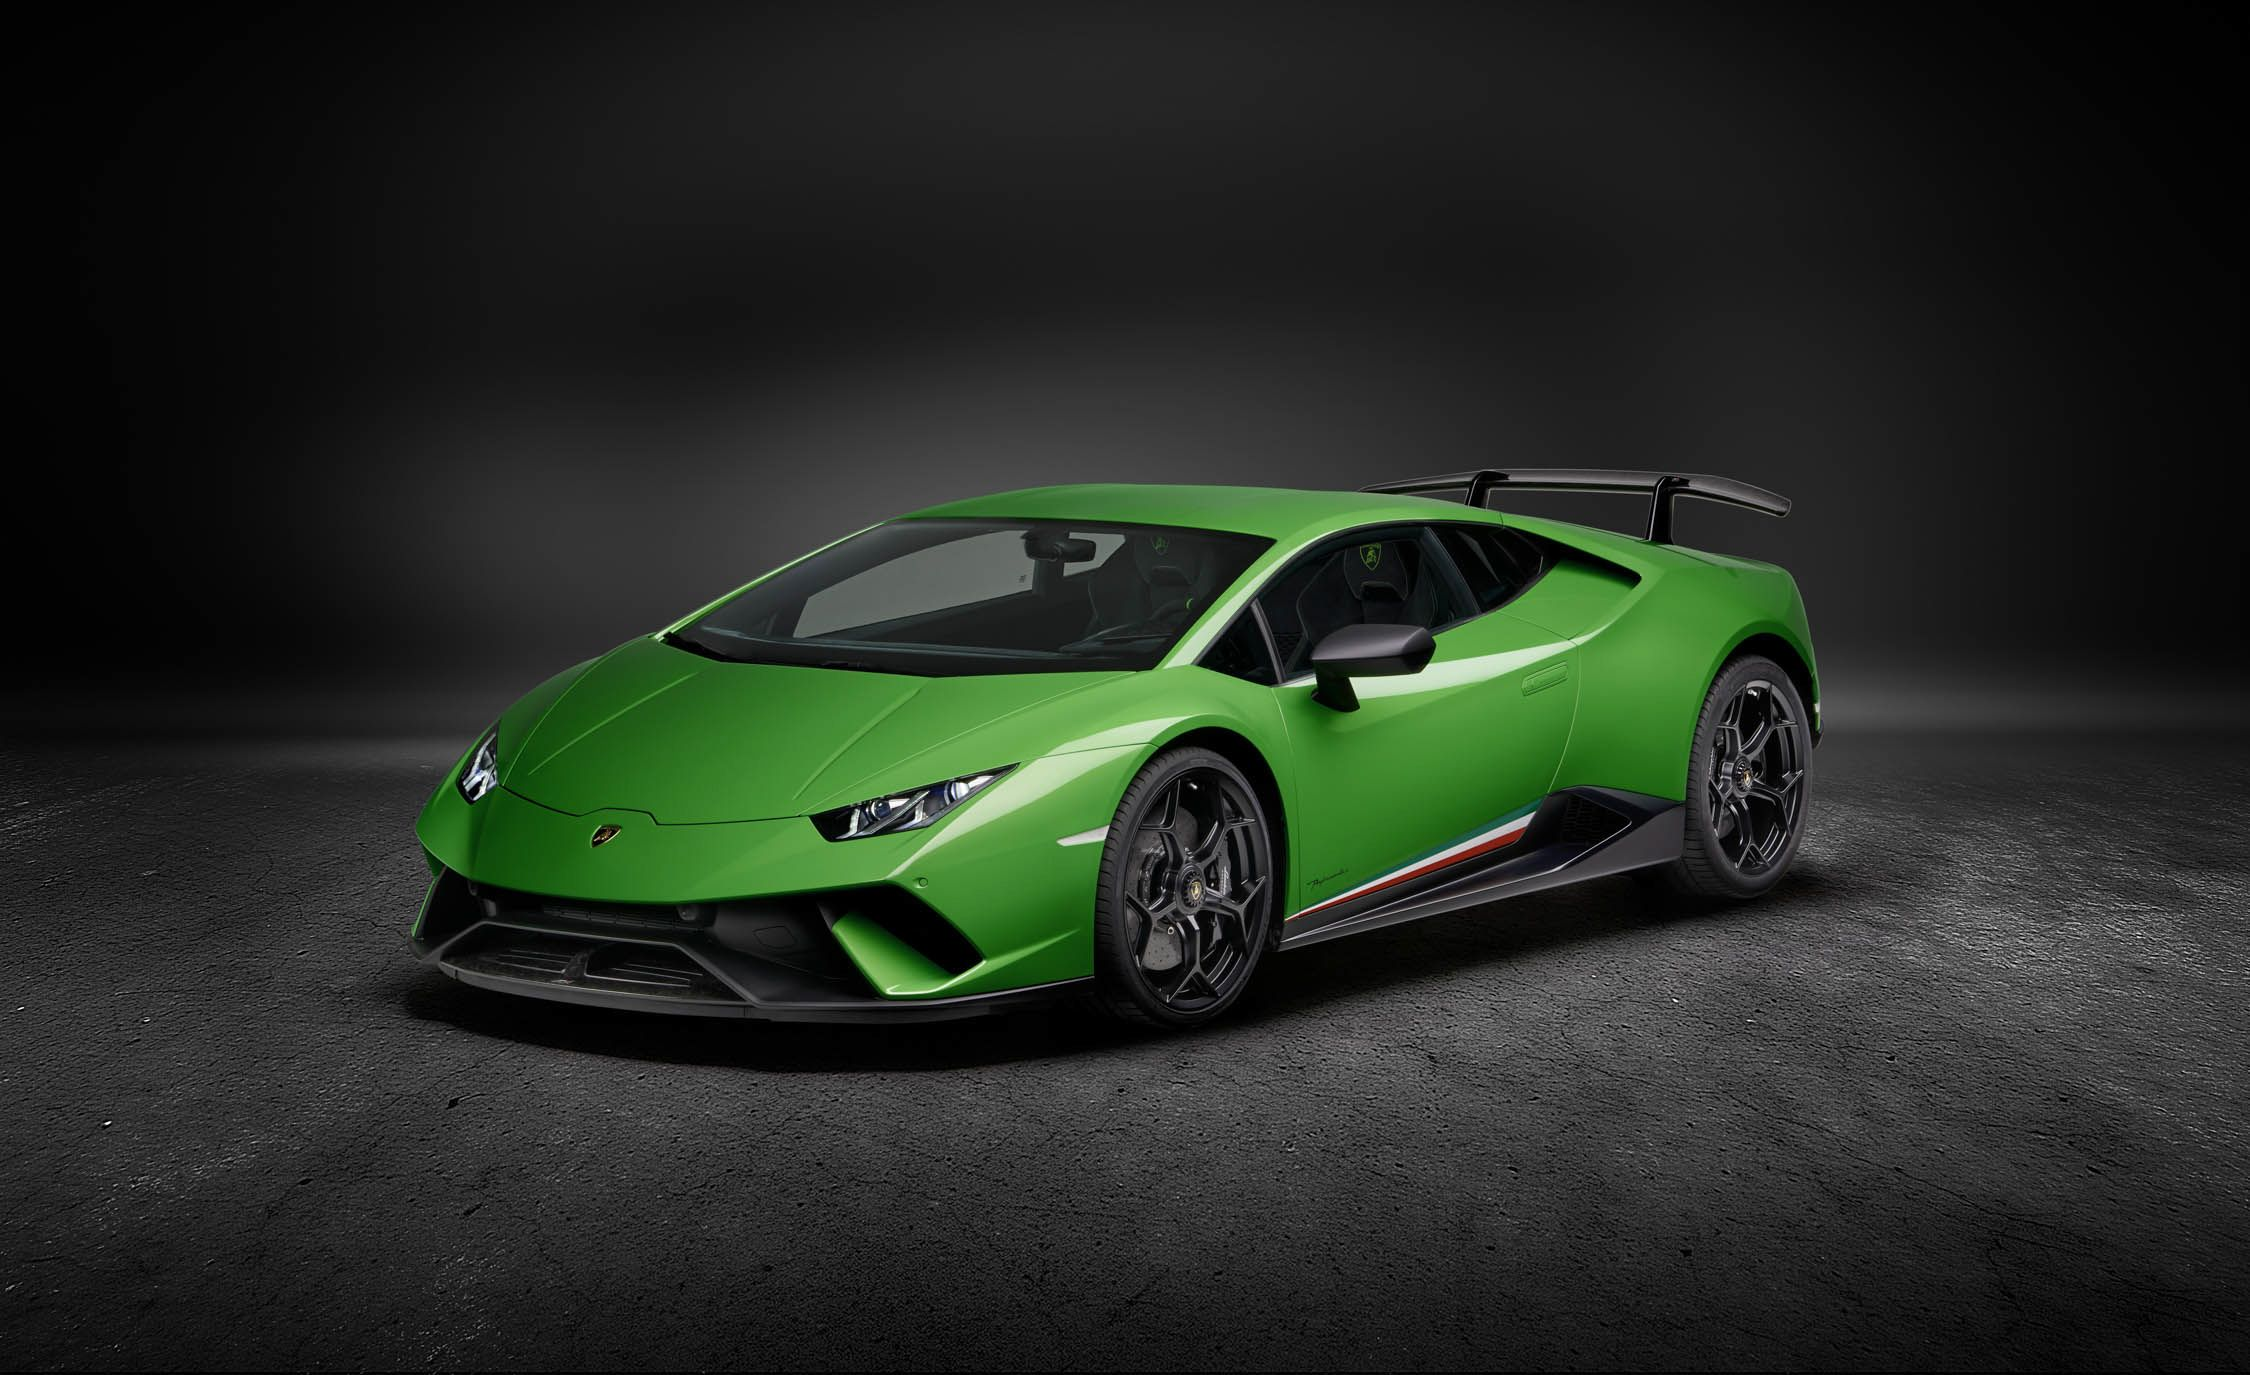 green specs reviews and lamborghini s lime car photos price aventador driver